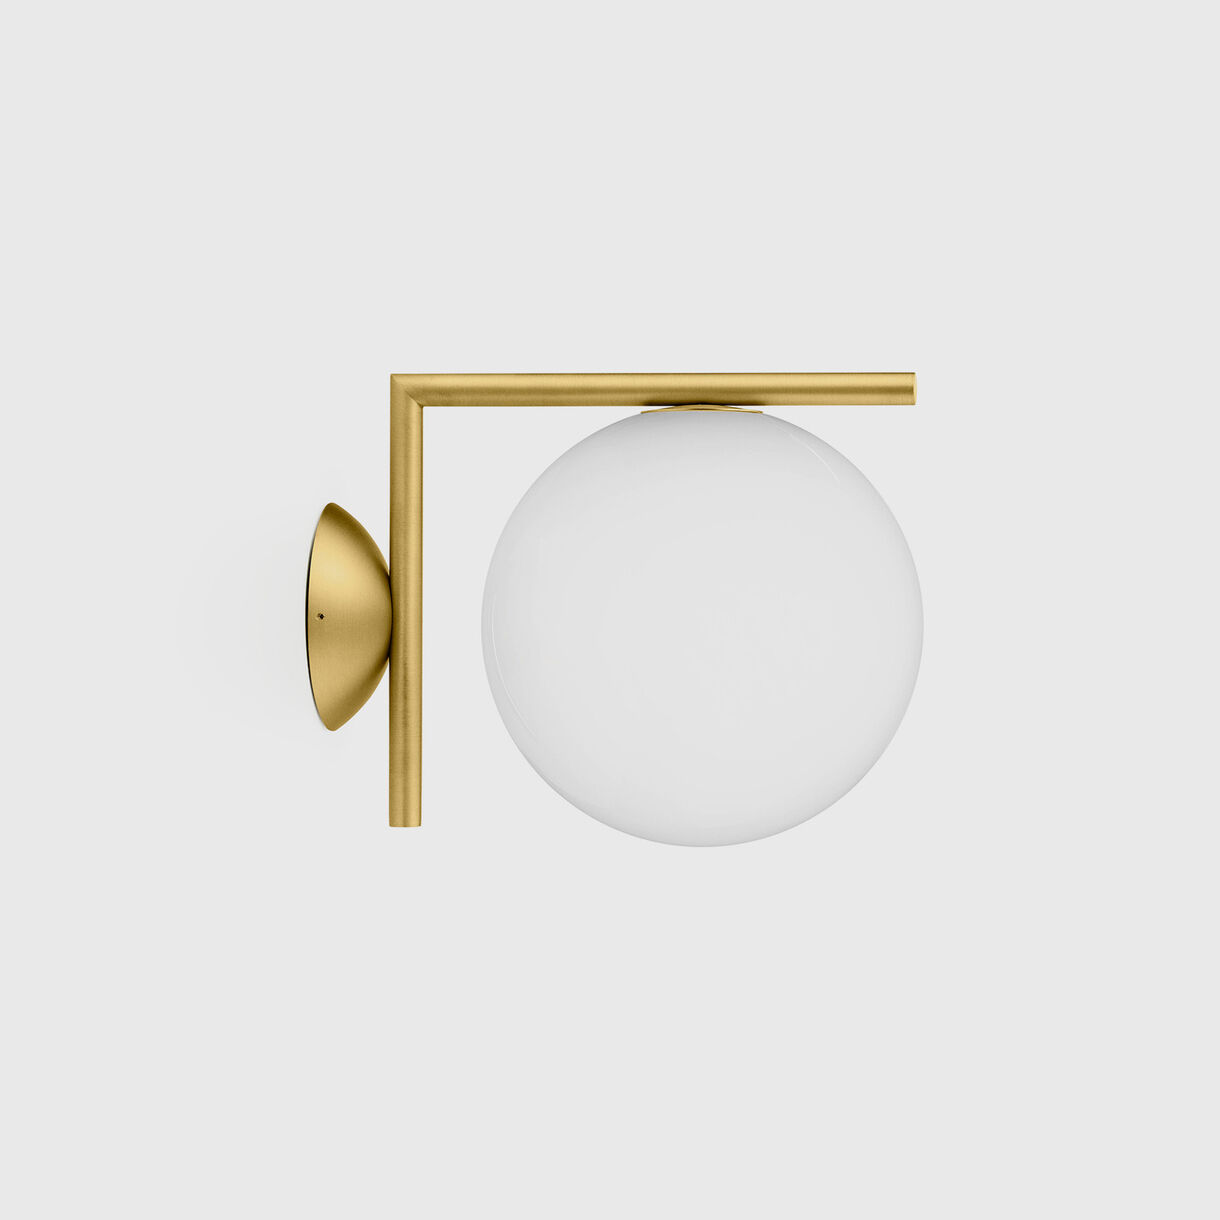 IC Ceiling Wall Lamp C/W1, Brass